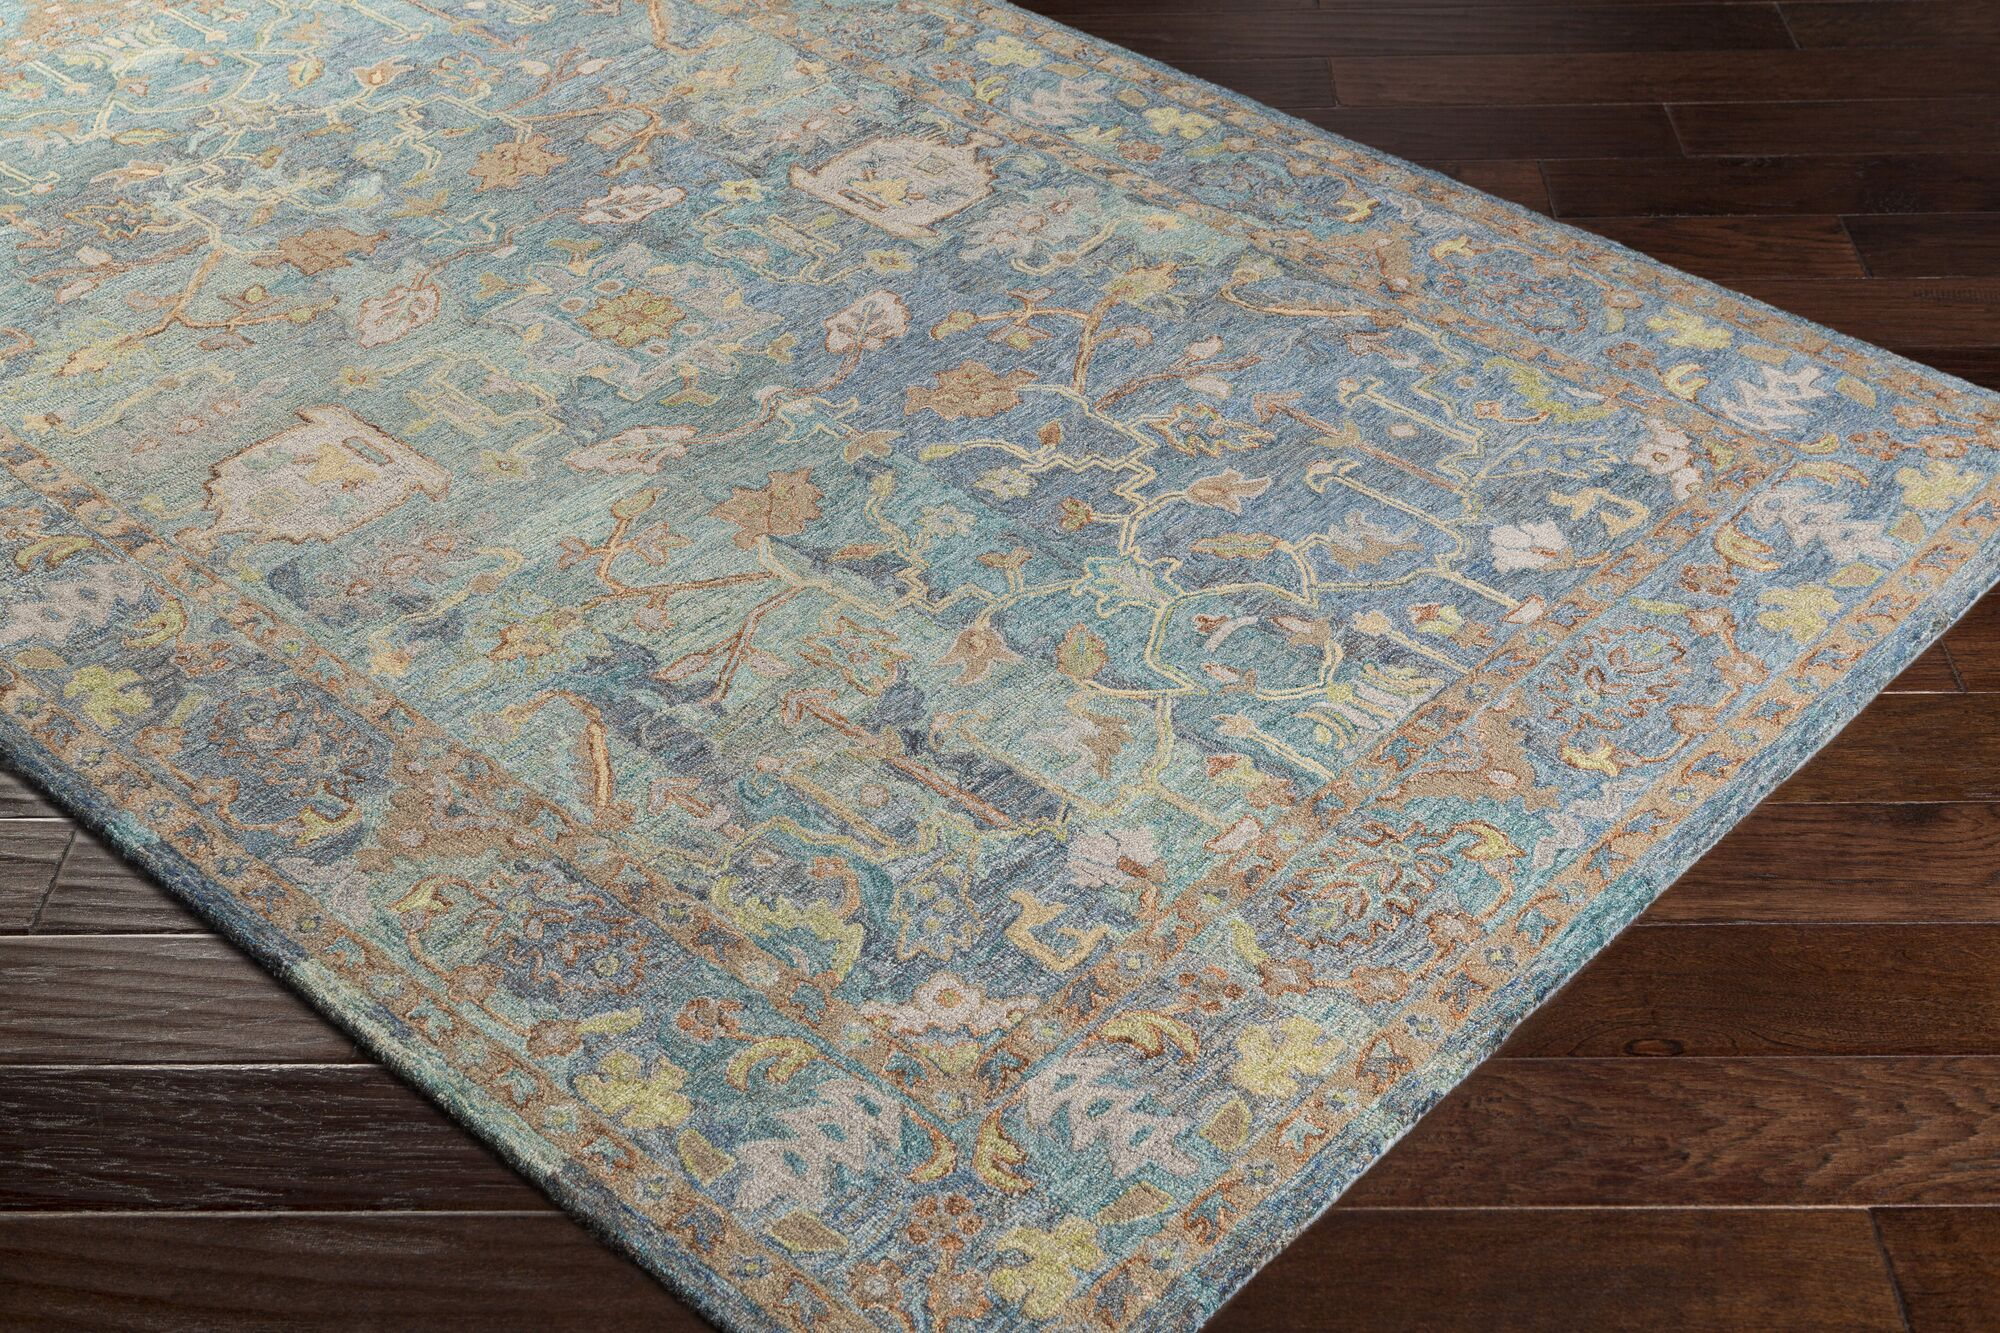 Kendall Green Vintage Floral Hand Hooked Wool Aqua/Gray Area Rug Rug Size: Rectangle 5' x 7'6